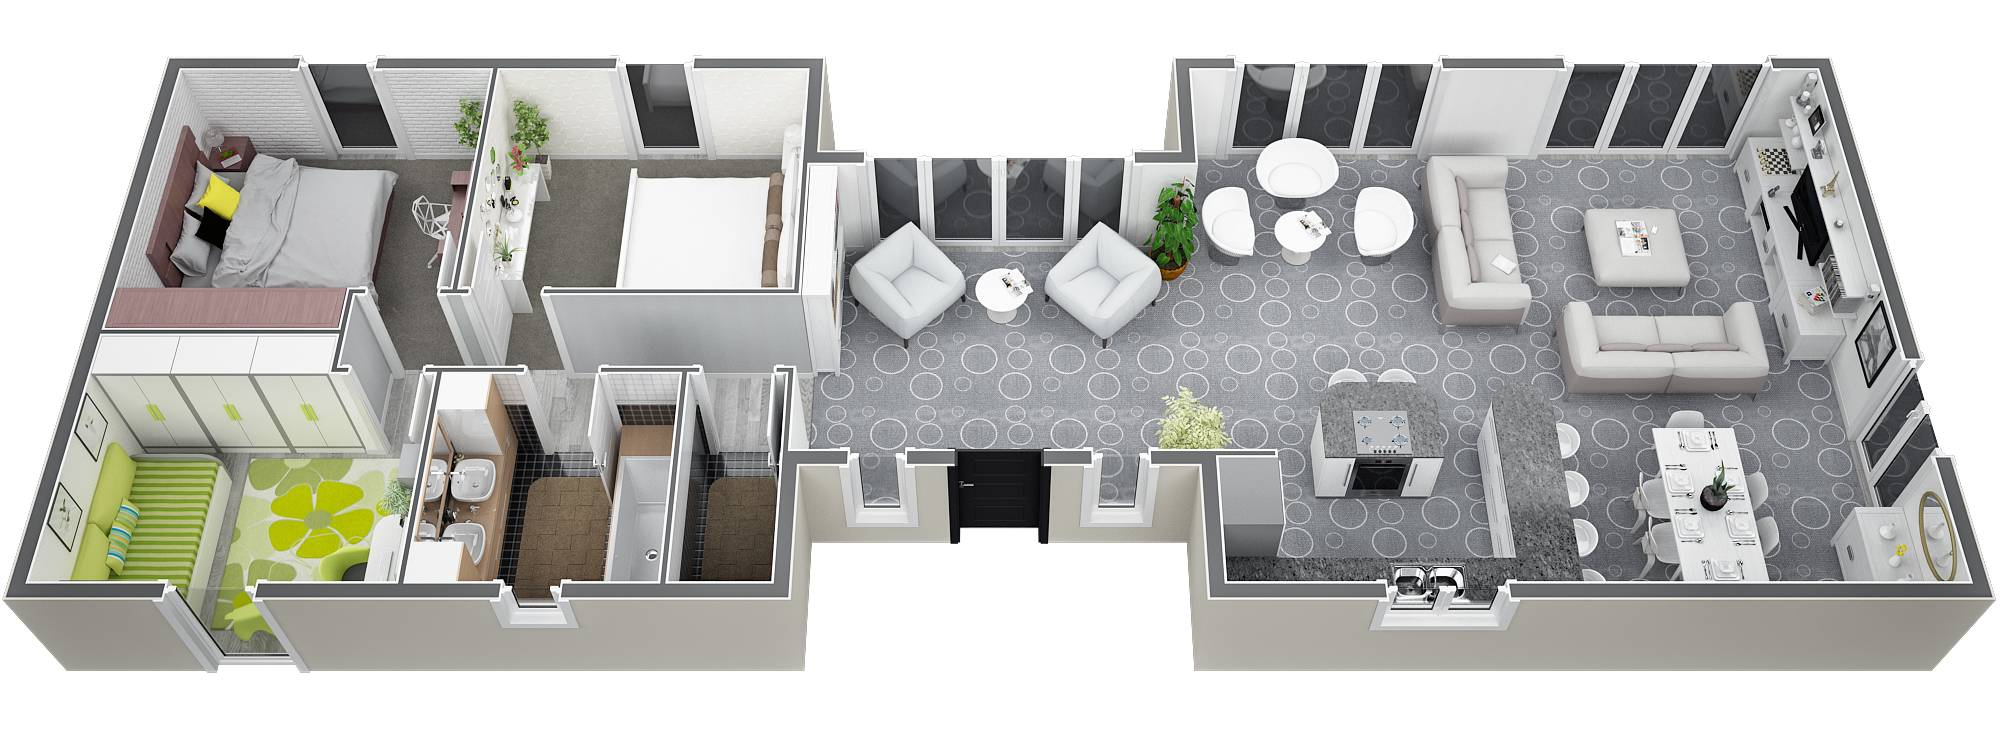 Mod le de plans de villa de construction traditionnelle de - Plan maison plain pied 3 chambres 100m2 ...